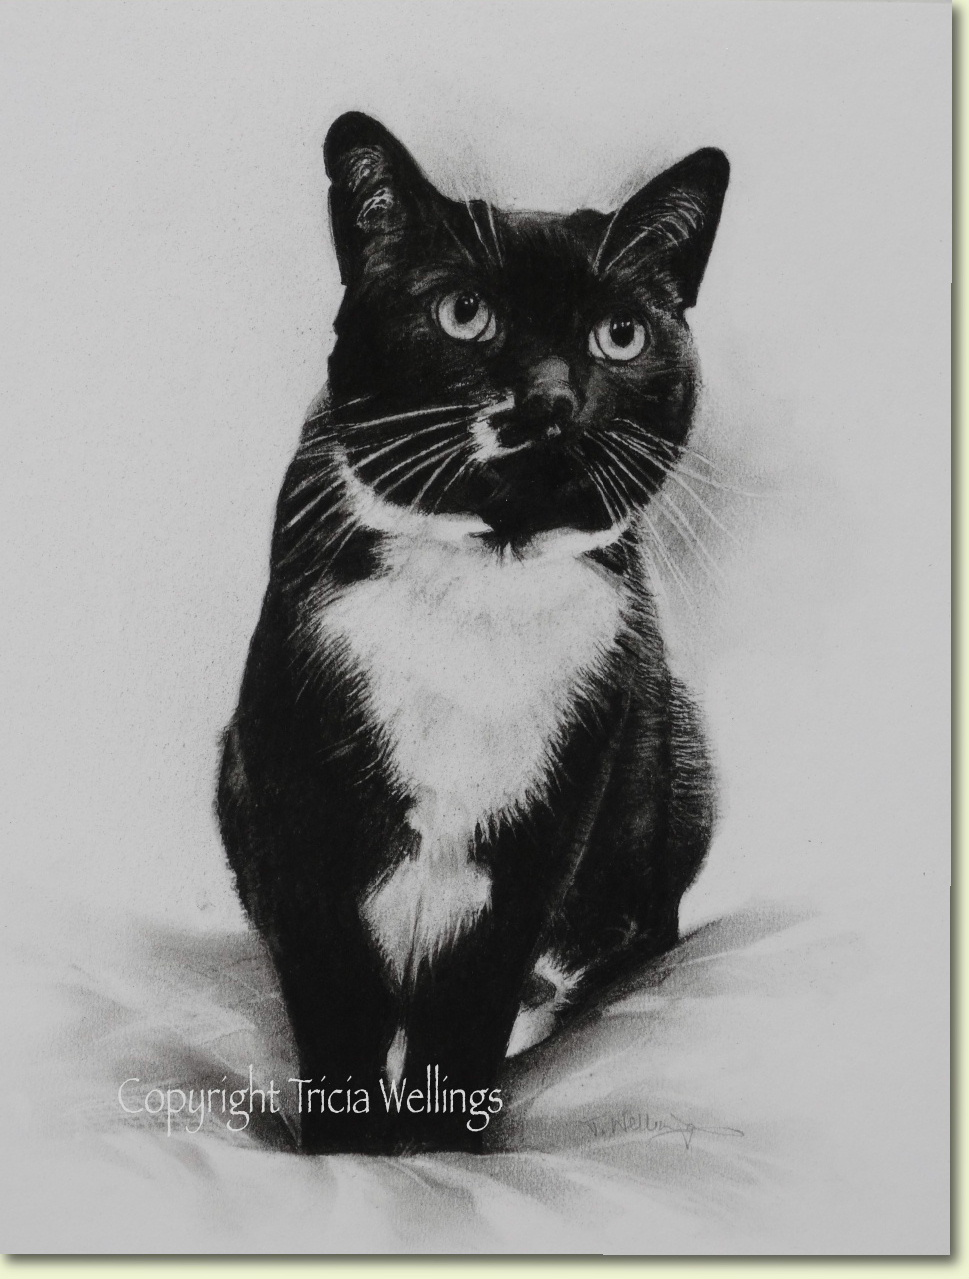 Tricia Wellings cat portrait in charcoal